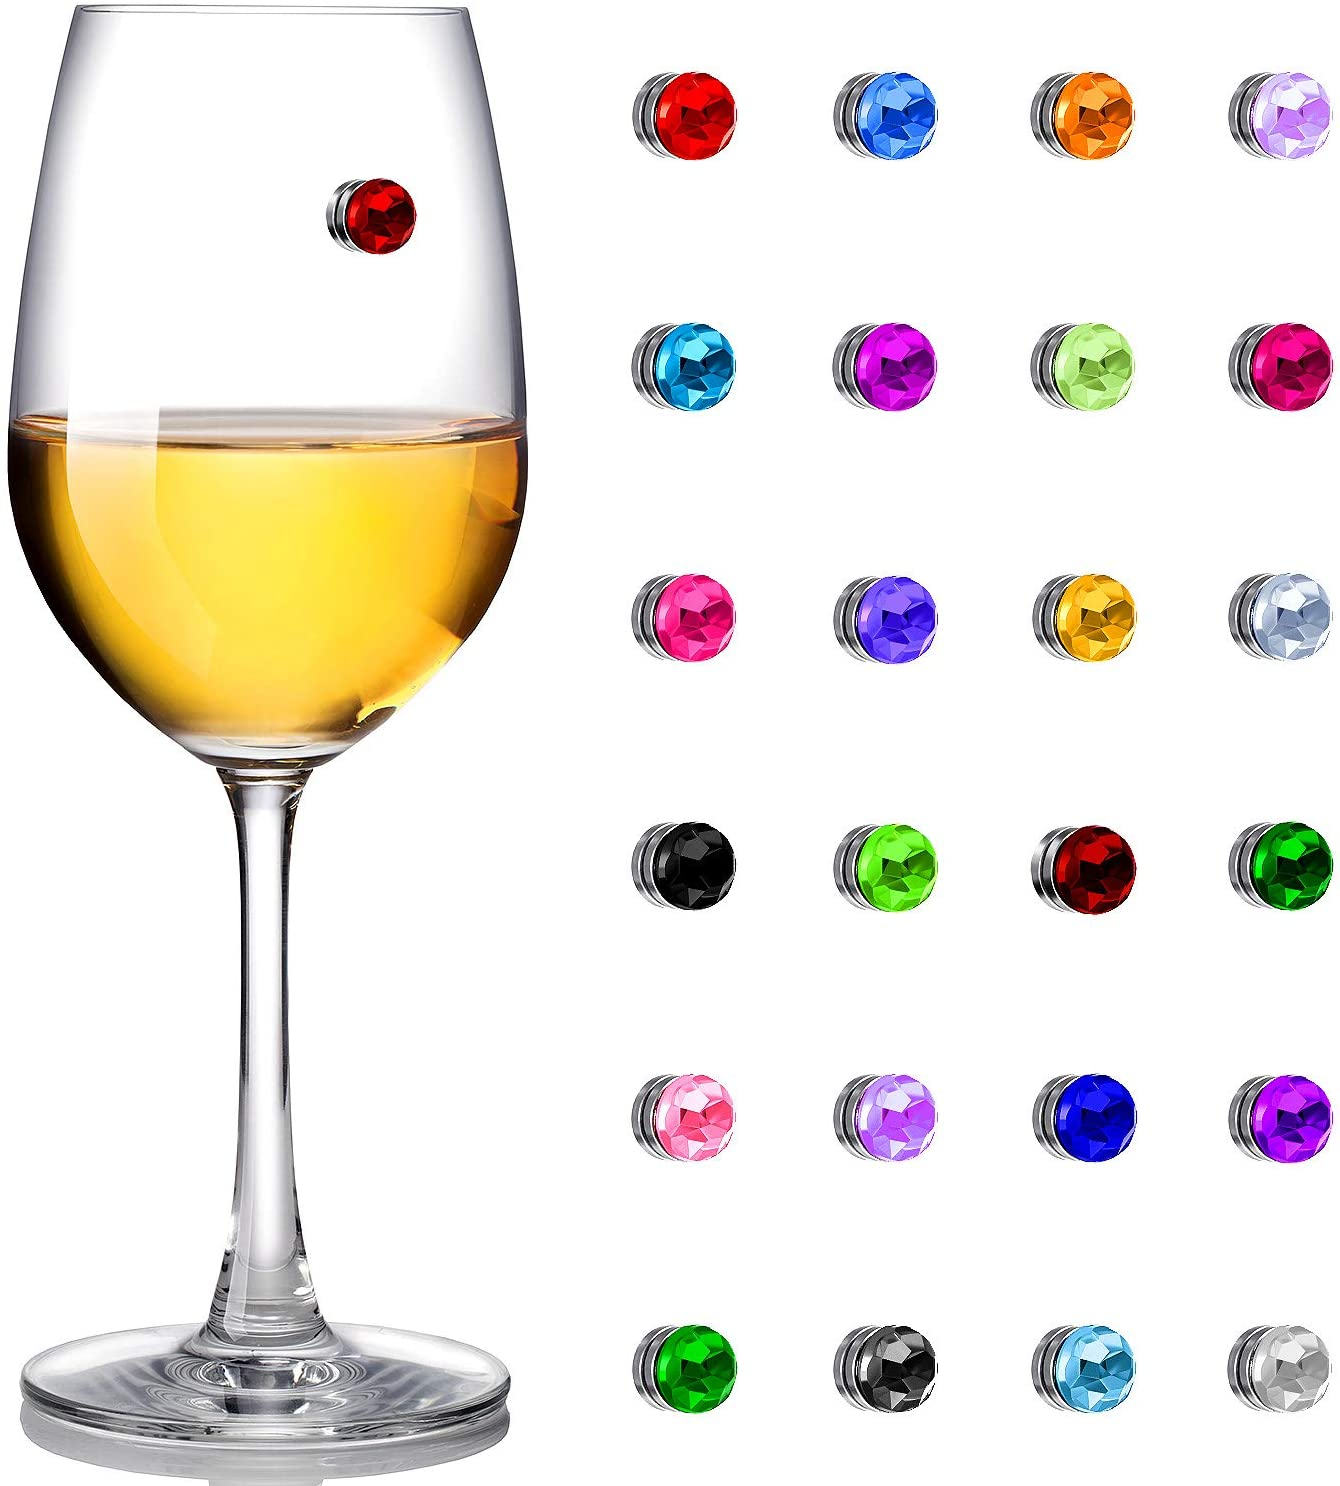 24 Pieces Wine Glass Charms Crystal Magnetic Drink Markers for Wine Glass Champagne Flutes Cocktails Martinis, Colorful